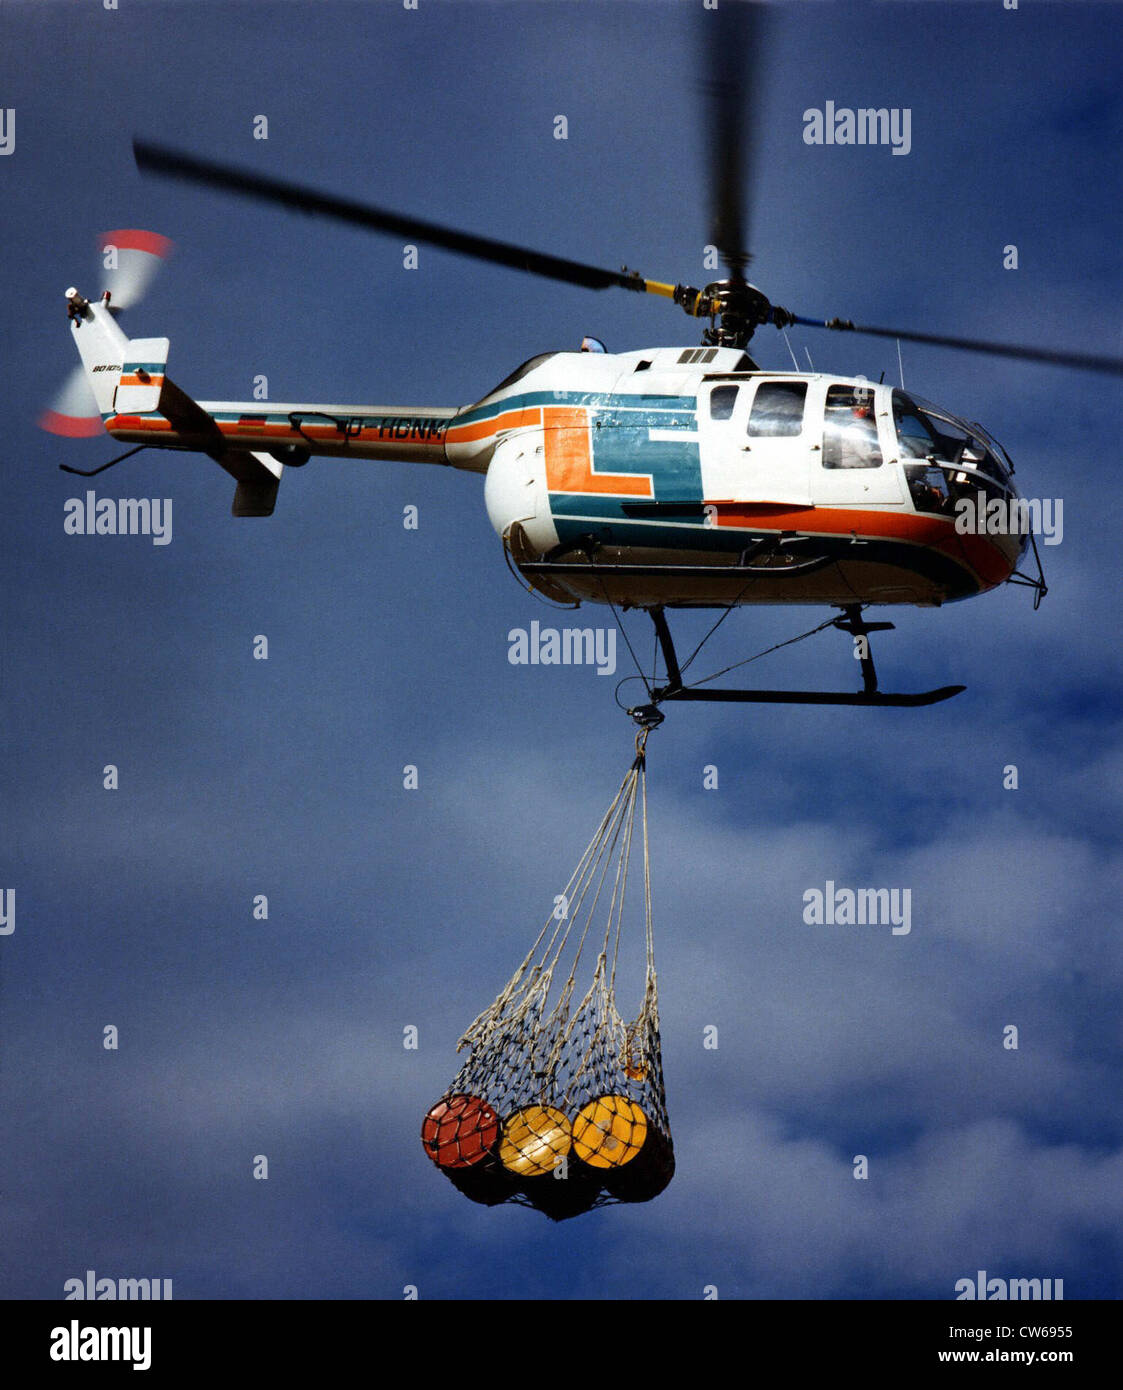 German MBB Bo-105 LS helicopter. - Stock Image